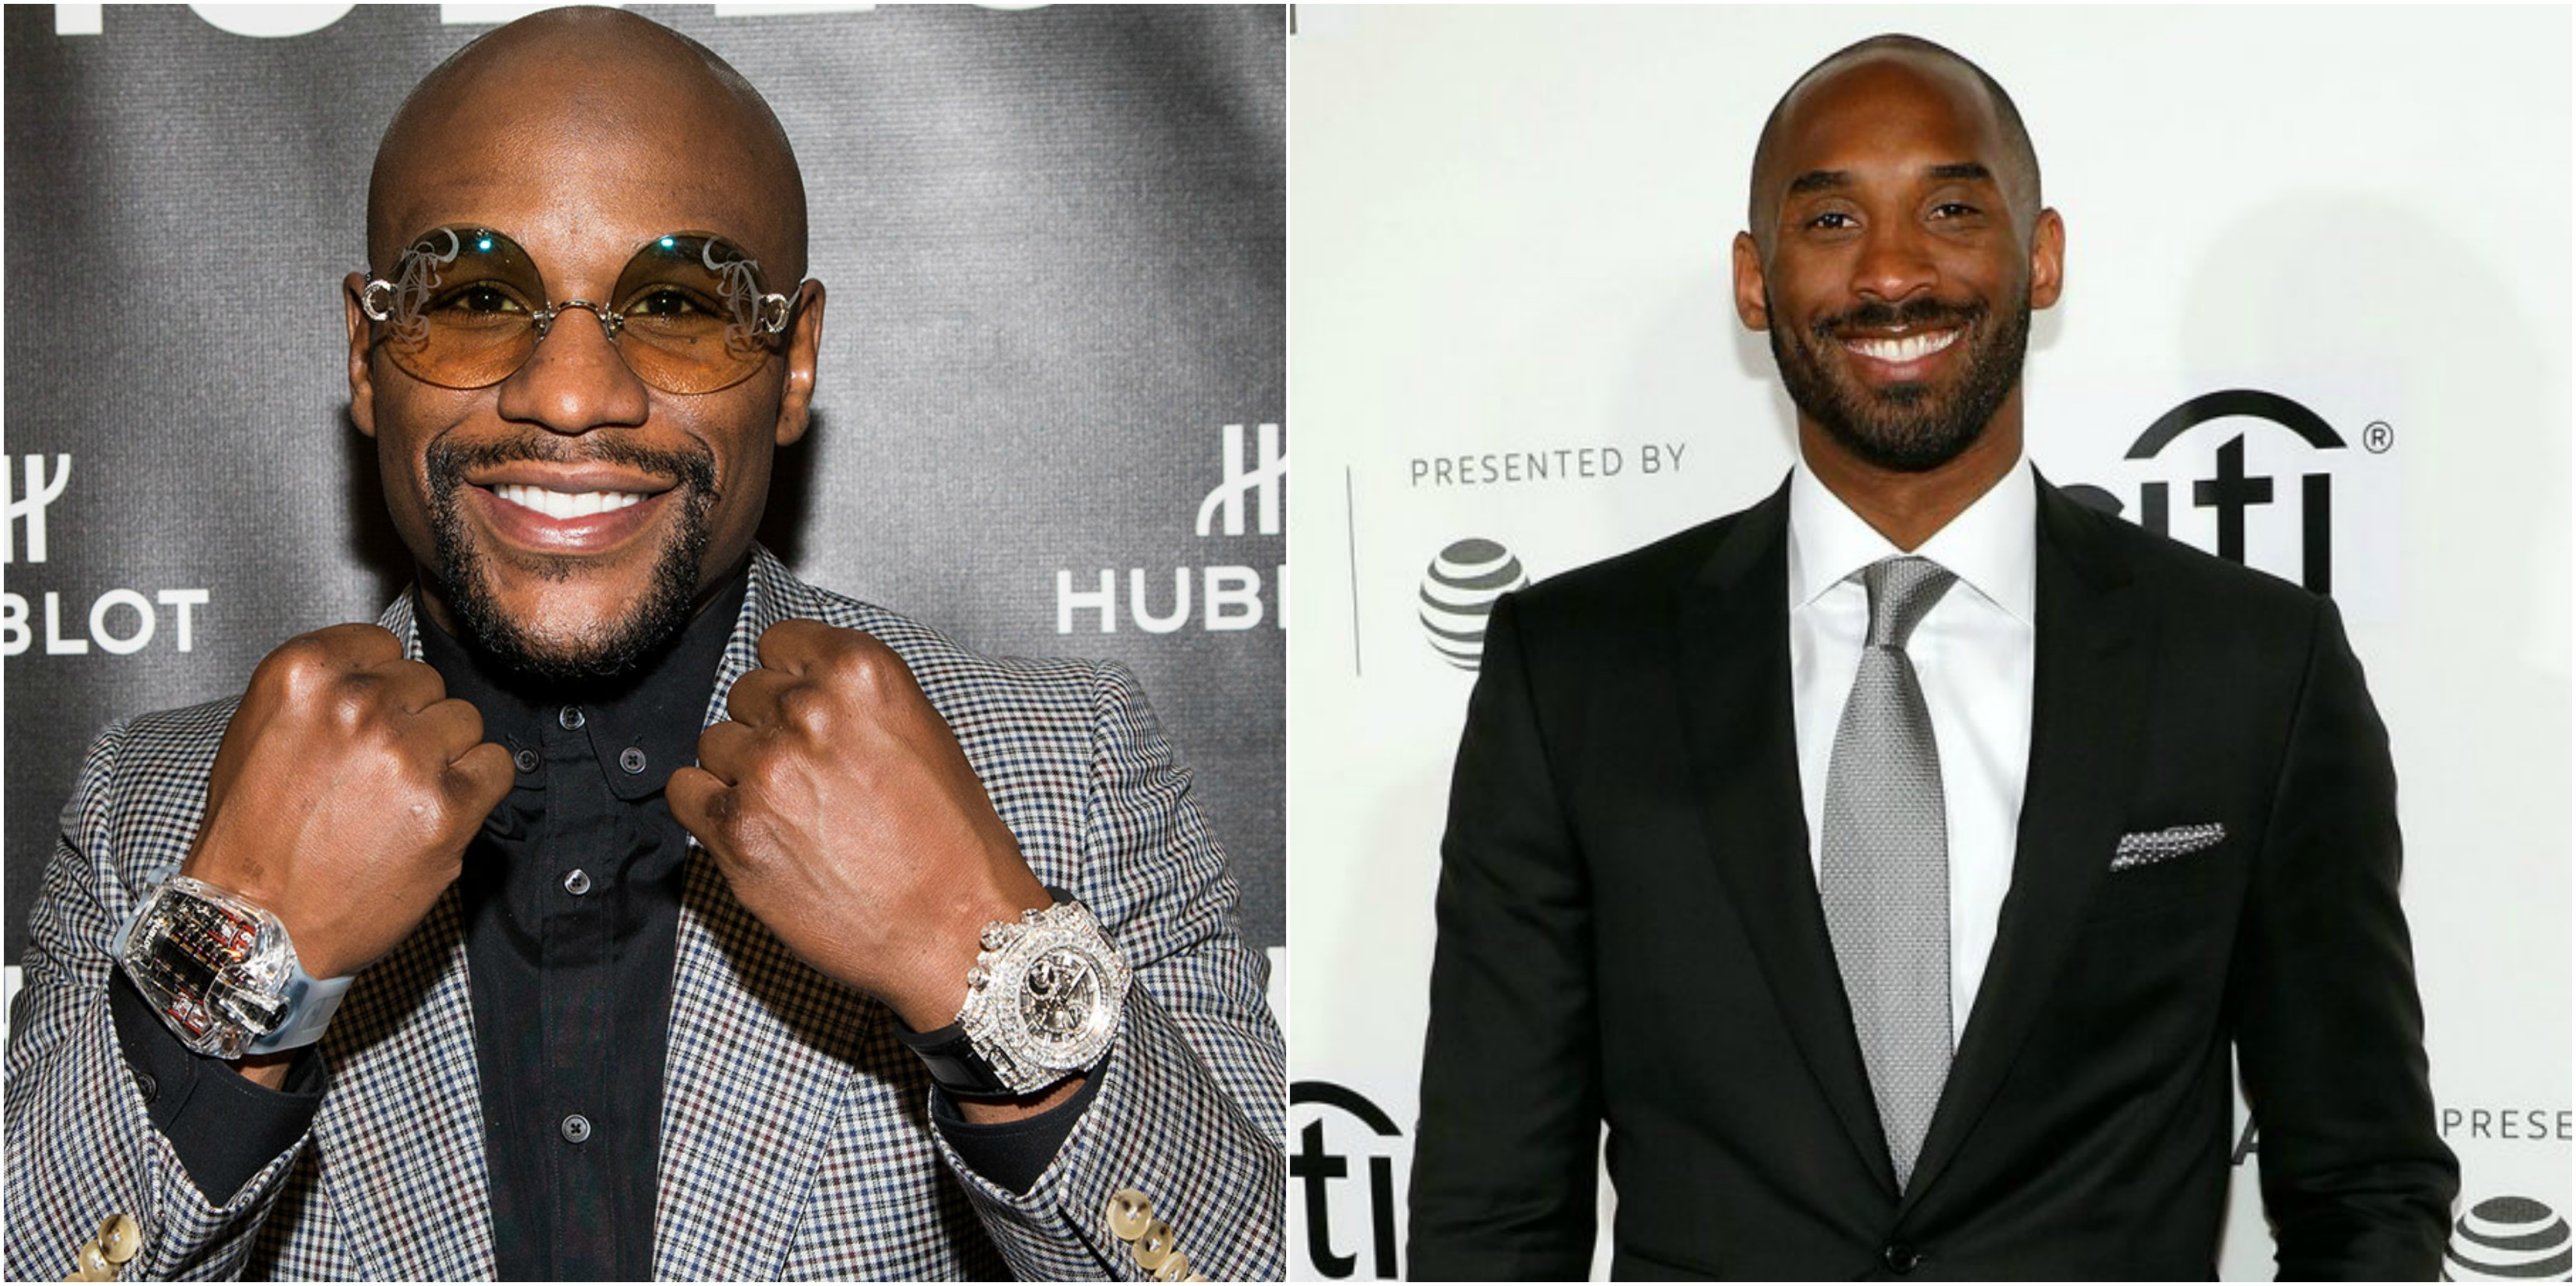 Floyd Mayweather Wants to Play Kobe Bryant 1-on-1 for $1 Million